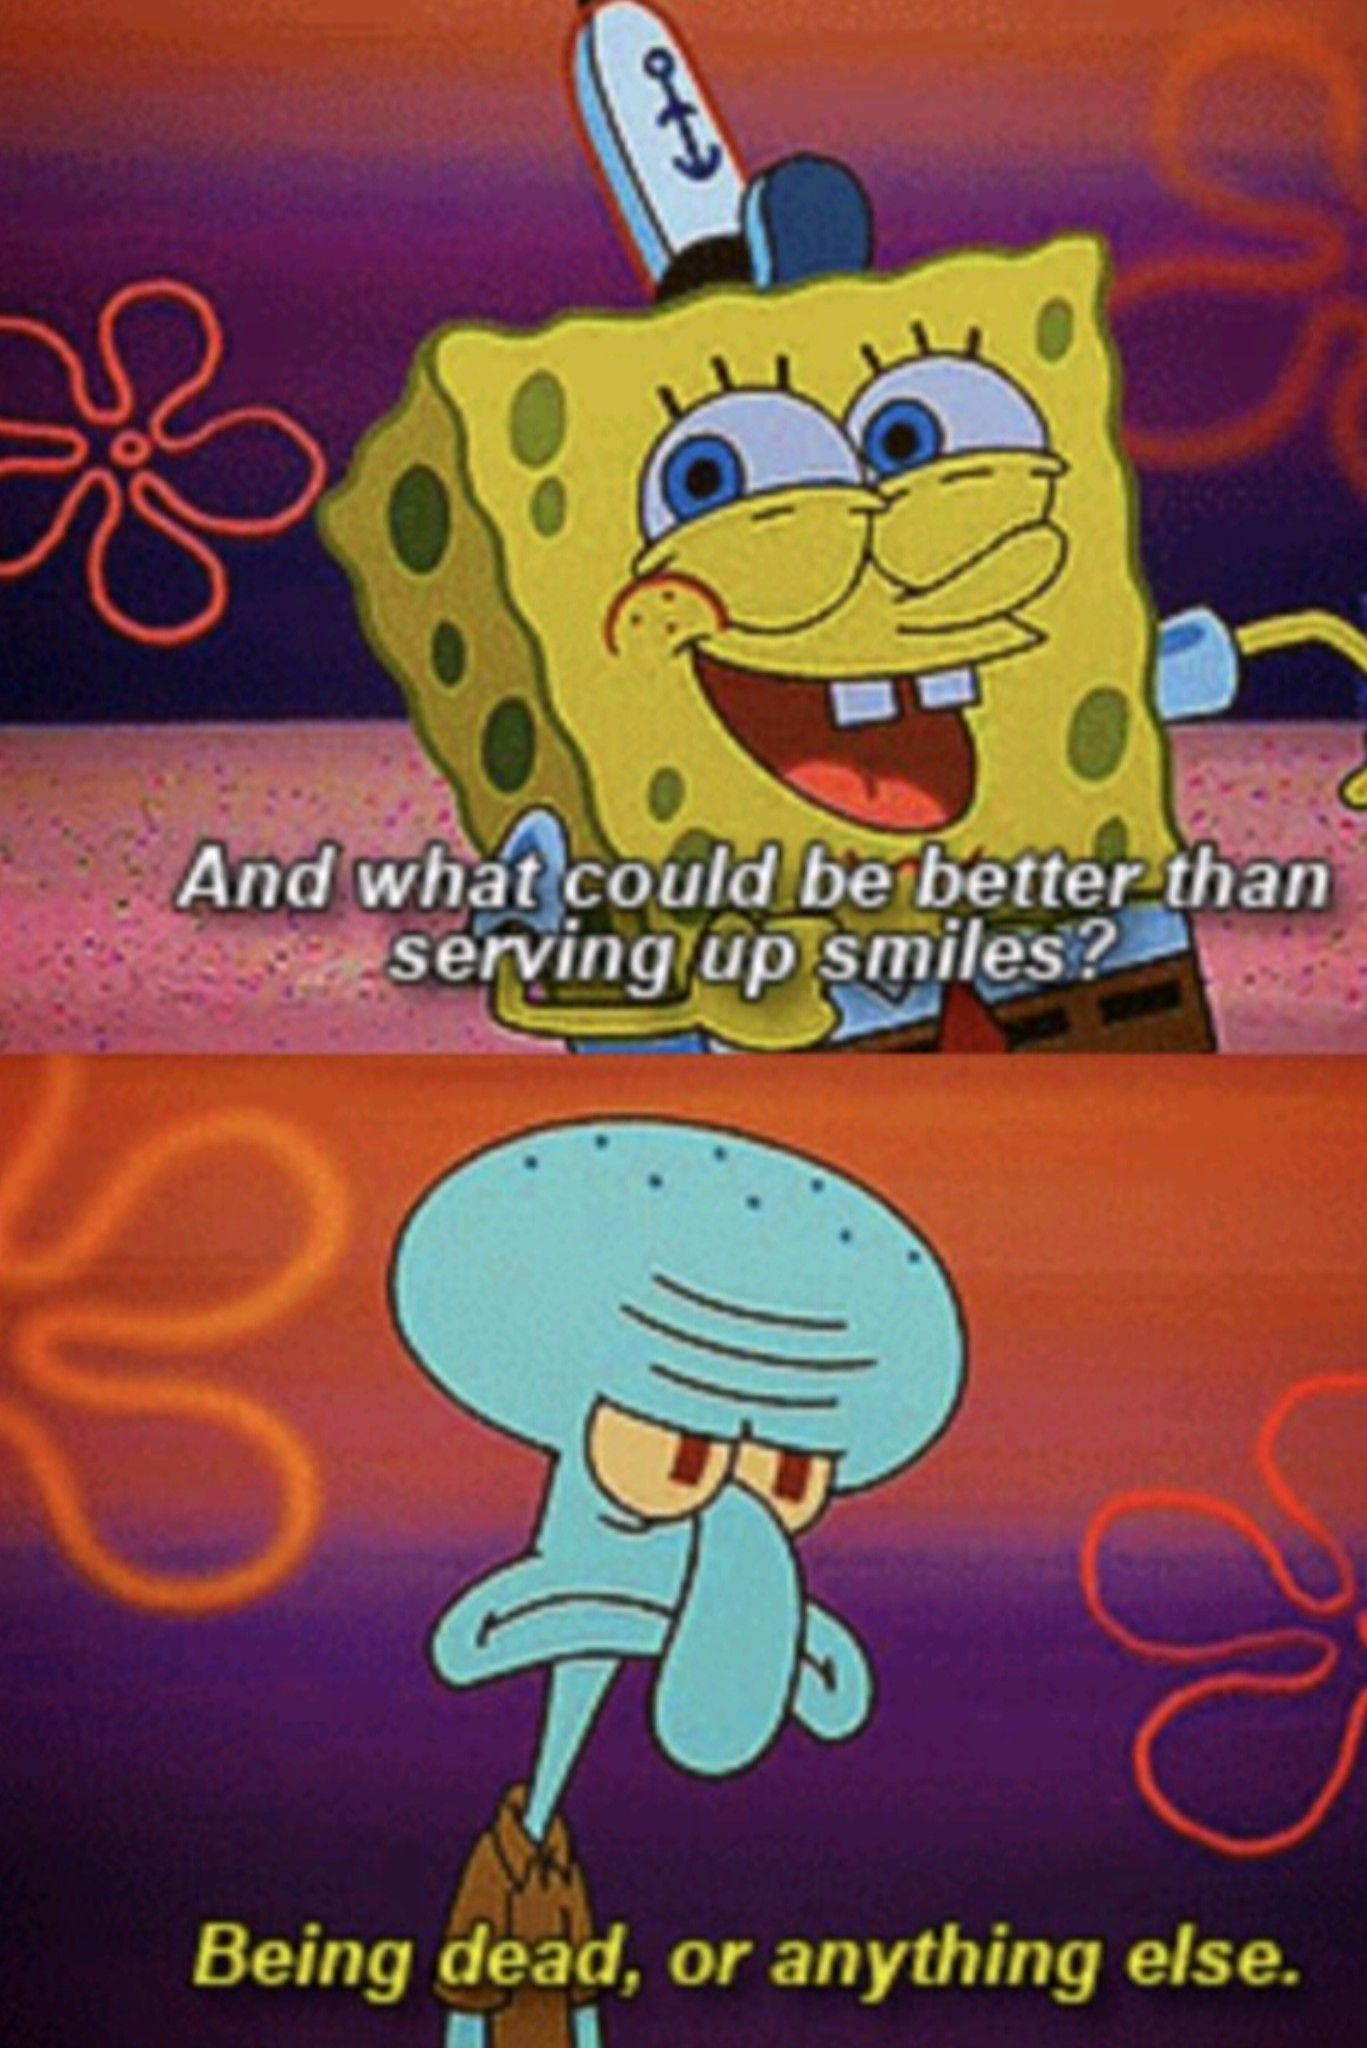 Squidward Singing Happy Birthday : squidward, singing, happy, birthday, Humor, Relatable,, Squidward,, Happy, Birthday